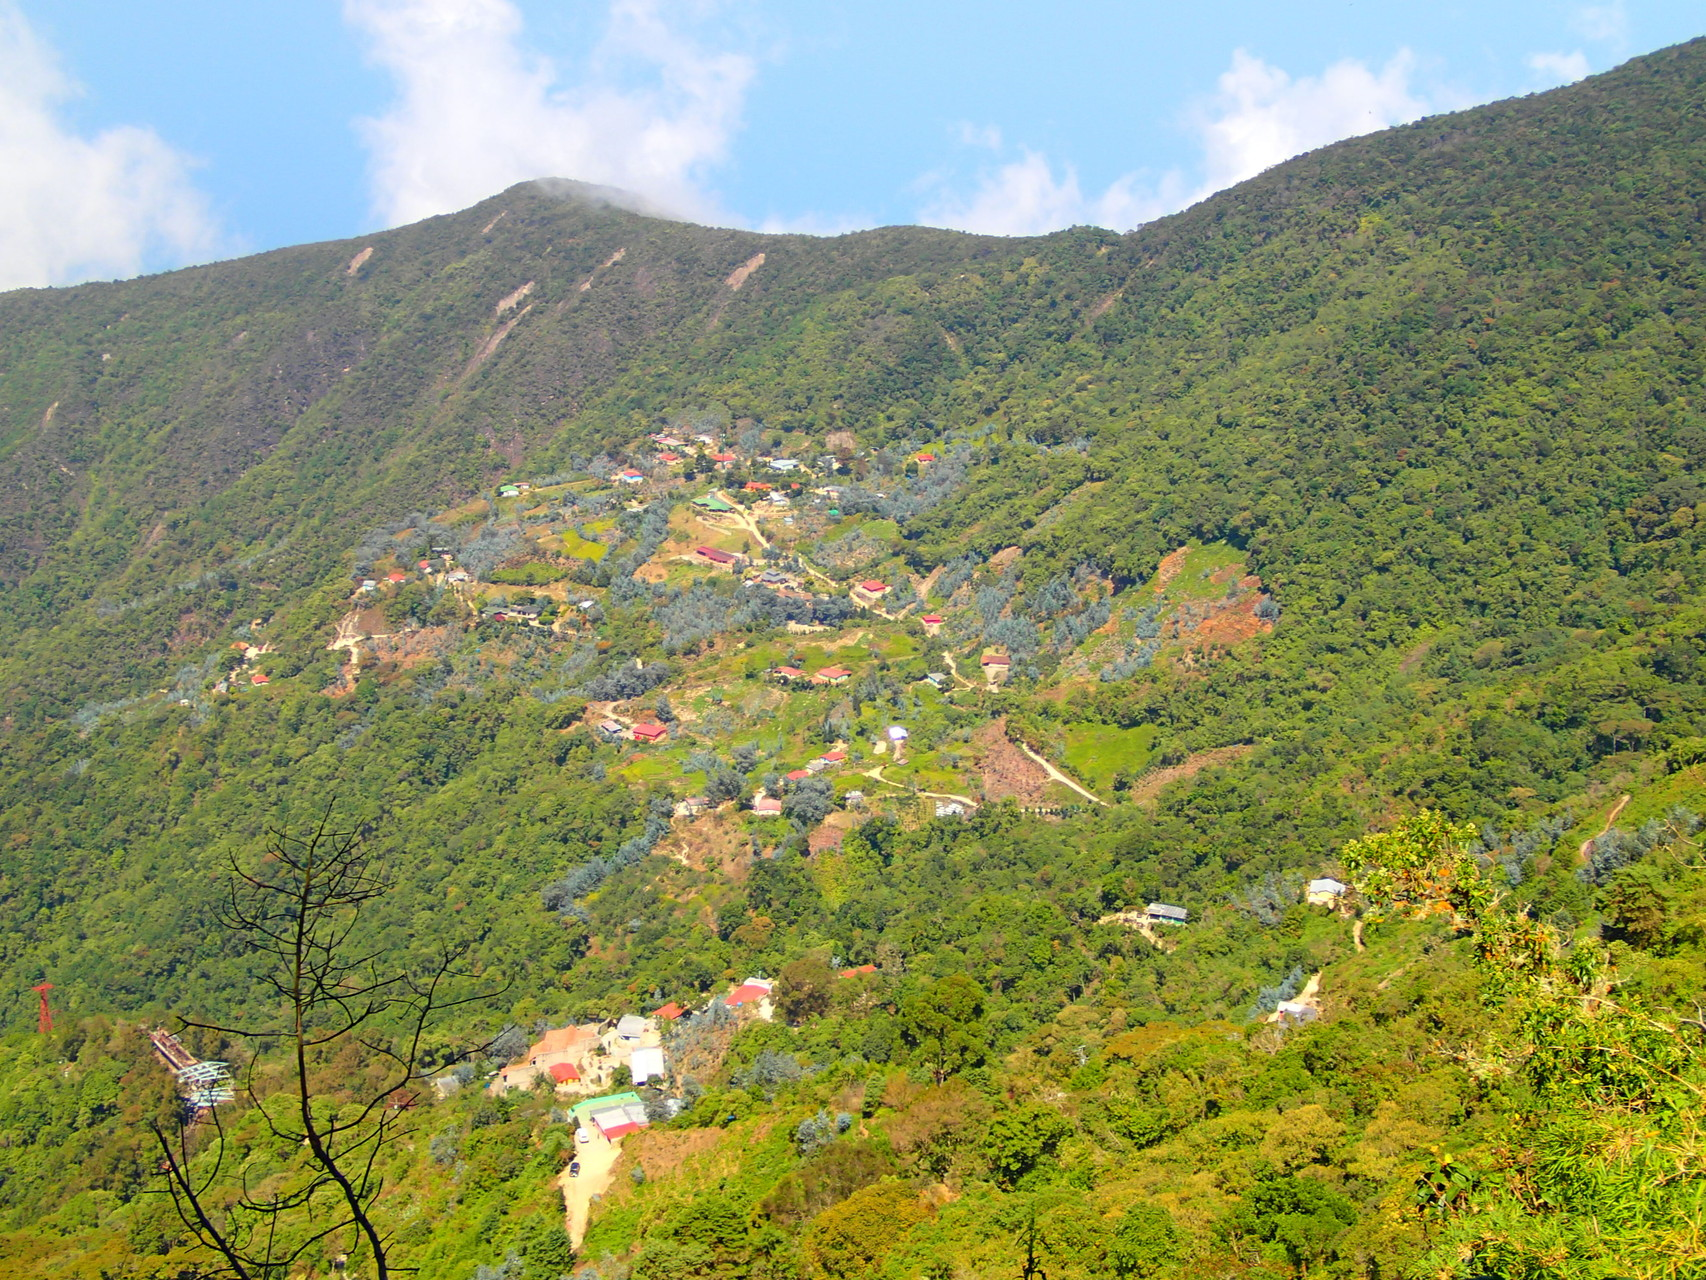 View on the picturesque town Galipan